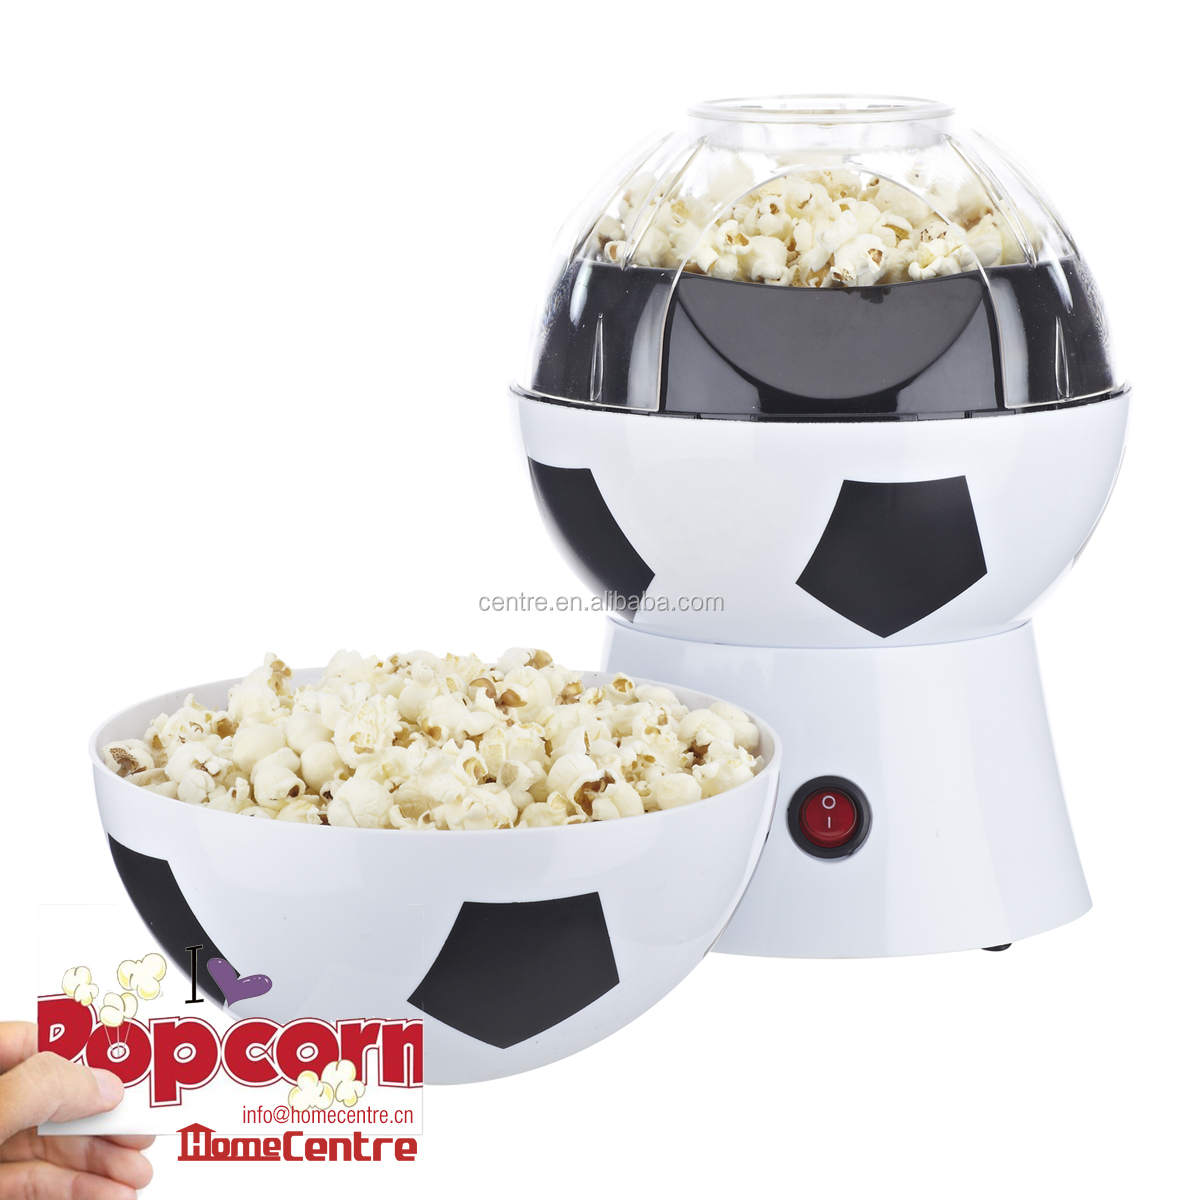 Mini football popcorn maker